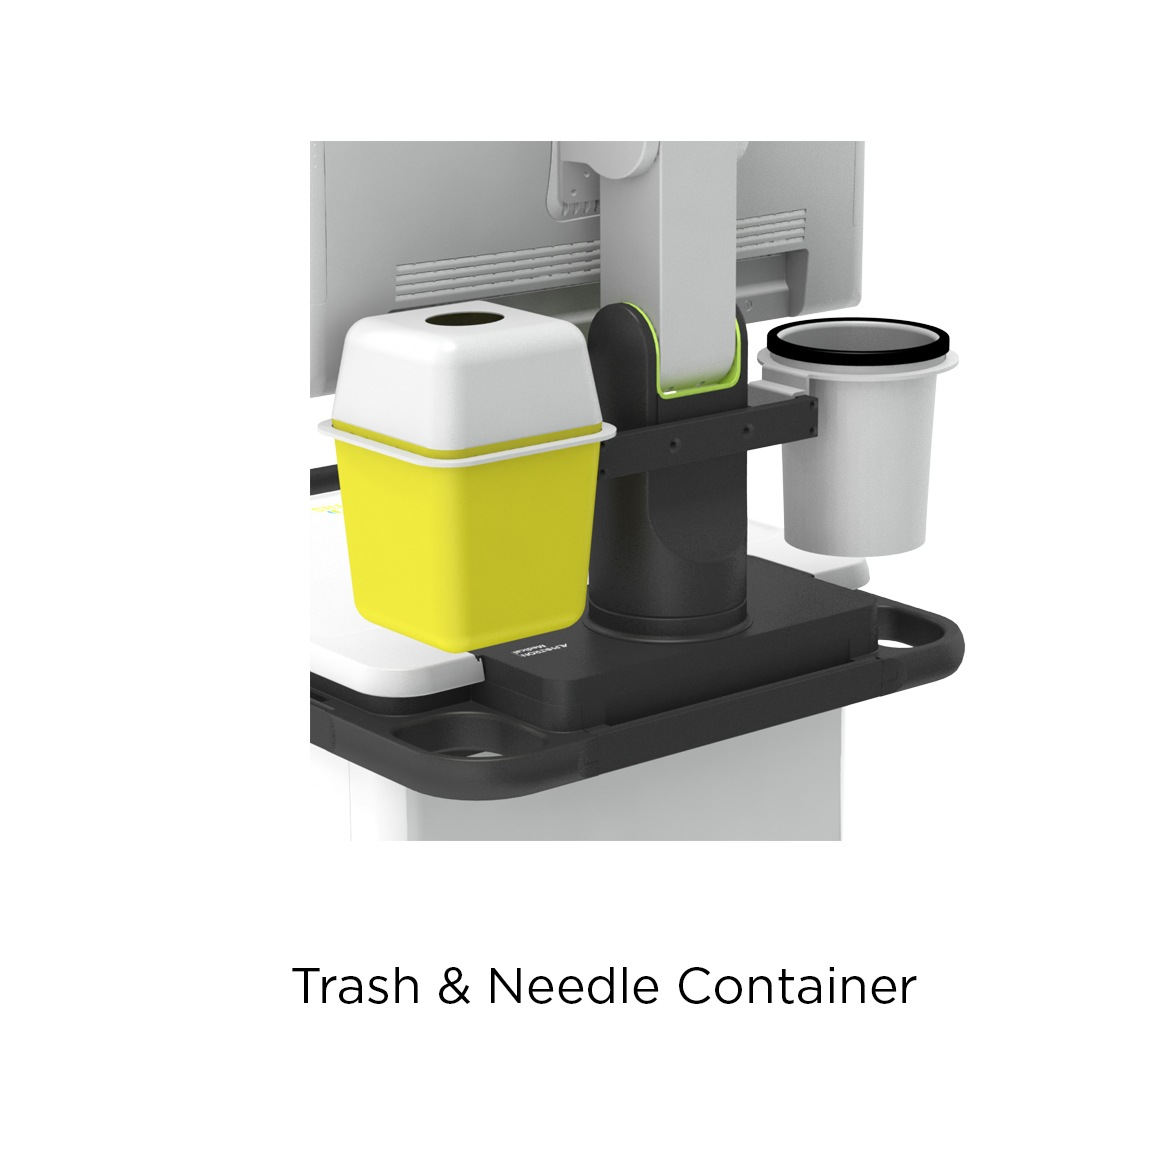 Trash & Needle Containers